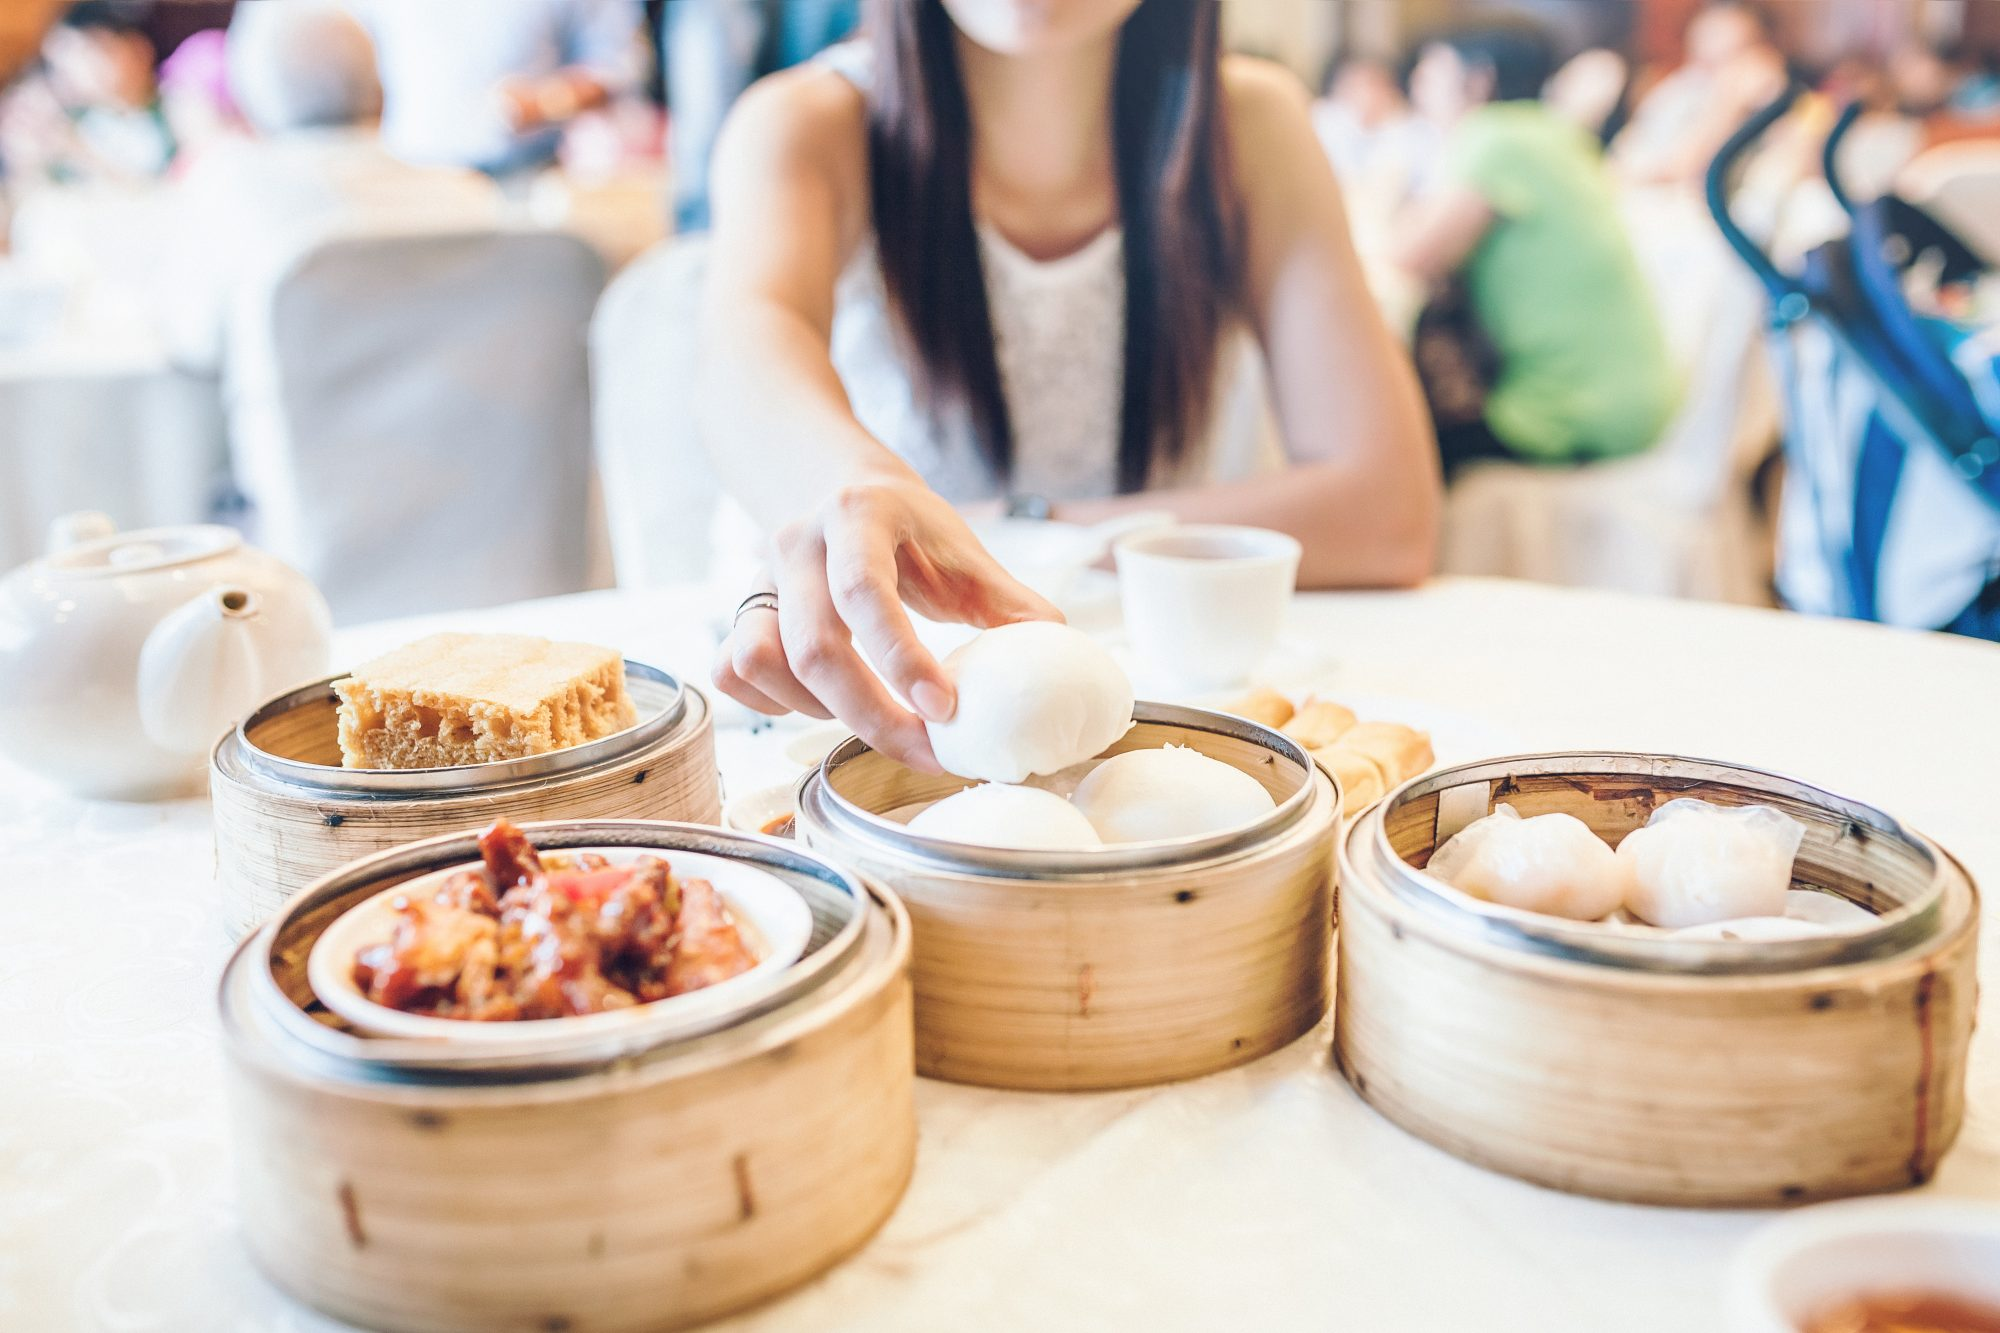 The Best Way to Enjoy Dim Sum at Home